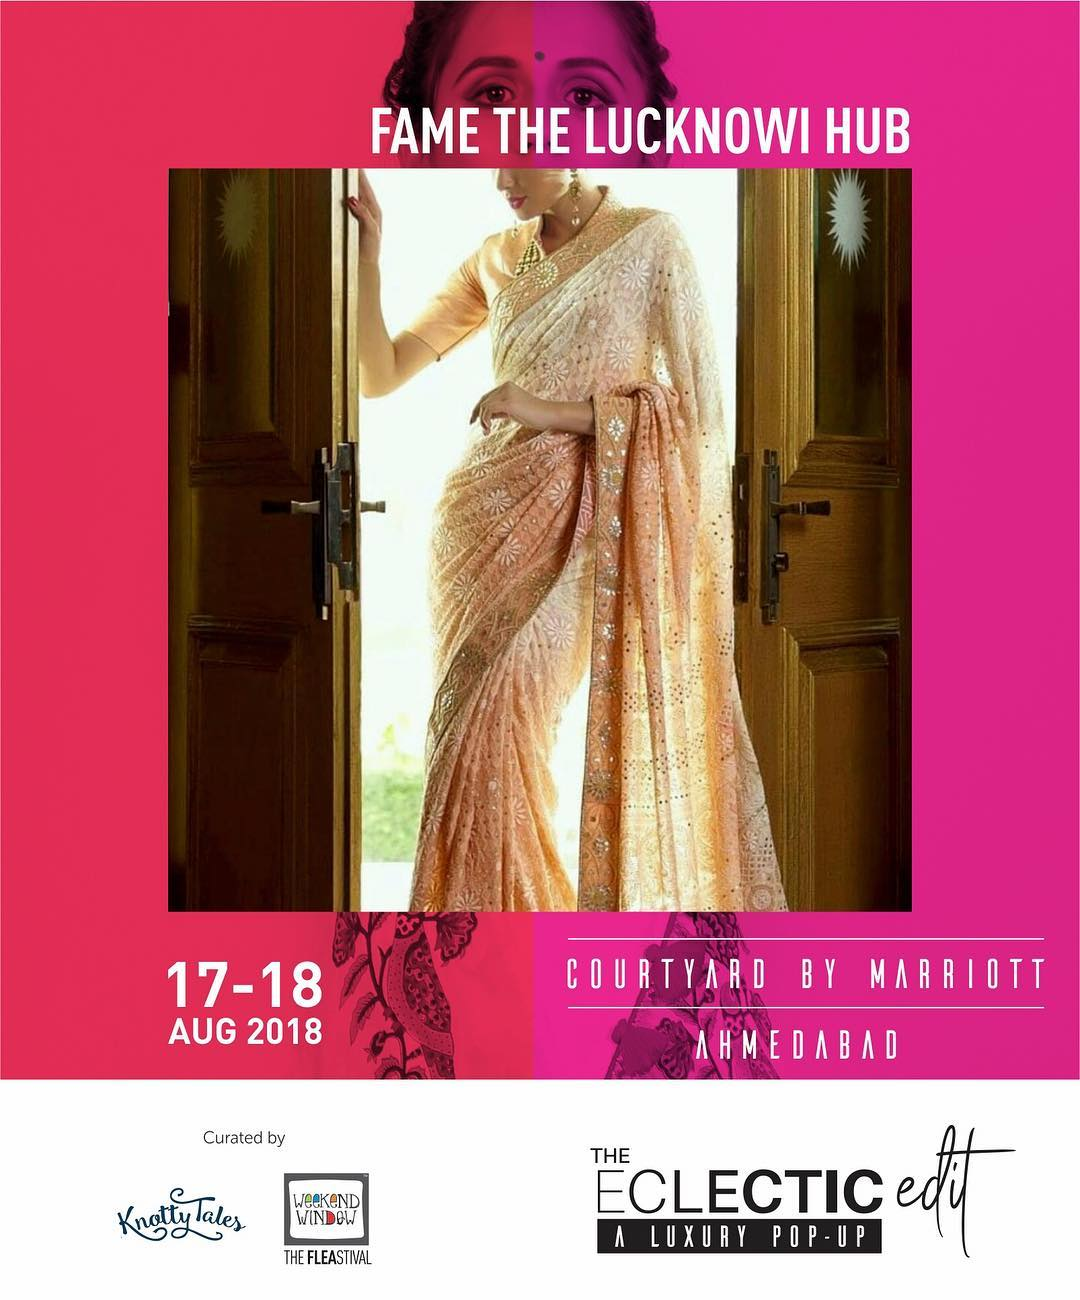 Nothing raises eyebrows like women that exude confidence. Power dress and impress with shades of elegance. Ready to make your move?  @ahmedabad_lucknowi is coming up with some of the finest lucknowi collection to flatter you and the onlookers.  #dresstoimpress #theeclecticedit #style #luxurylifestyle #ethnic #ahmedabad #latestfashion #knottytales #weekendwindow